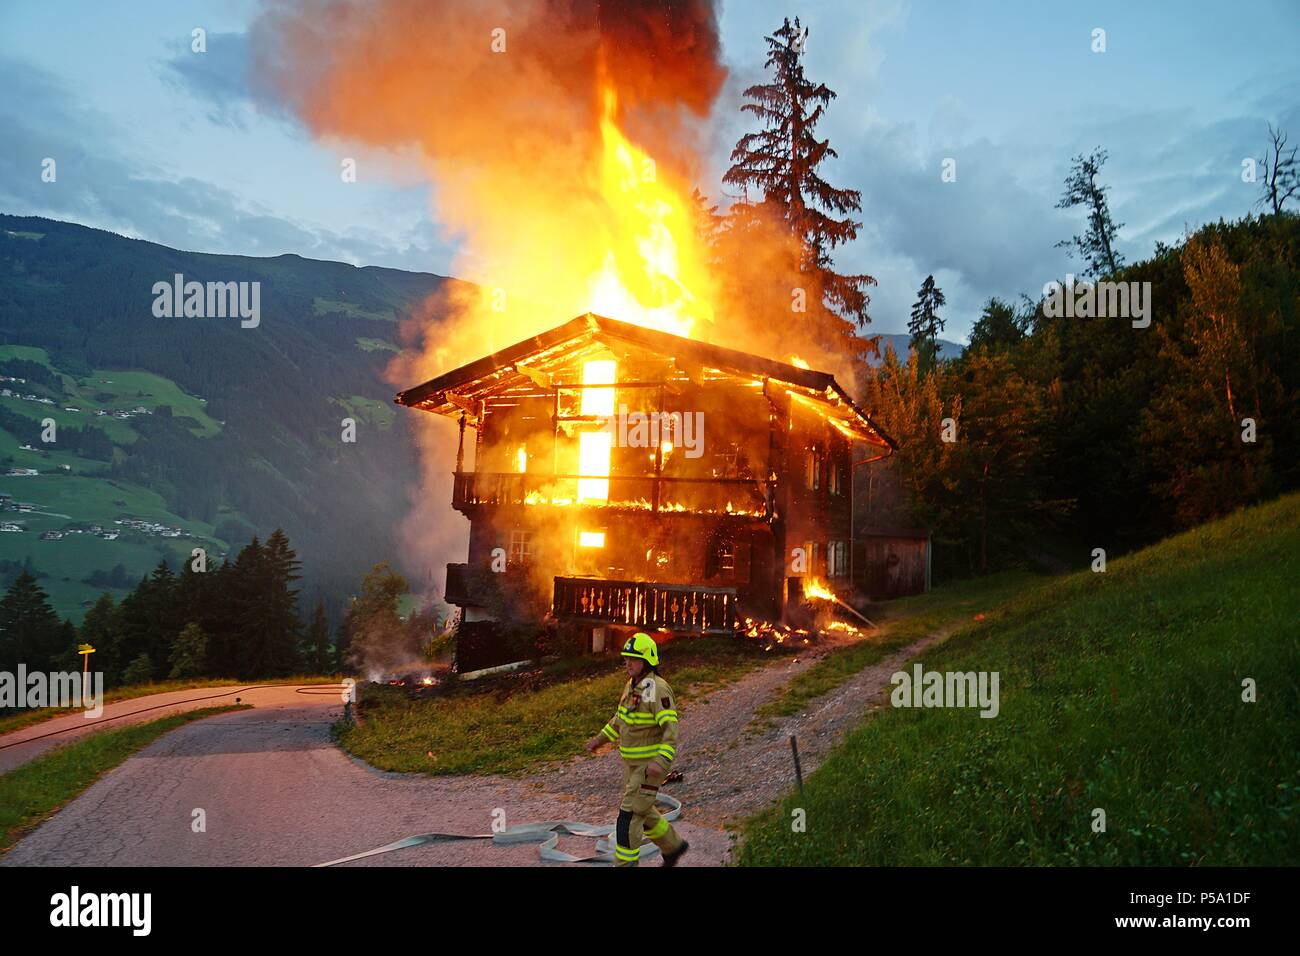 Austria, Ramsau. 26th June, 2018. The fire department attempts to extinguish the fire burning a wooden house in the Austrian Zillertal valley. The house which a German family had rented for a longer time period burned down completely. Credit: zillertalfotos.at/Jürgen Masching/dpa/Alamy Live News - Stock Image